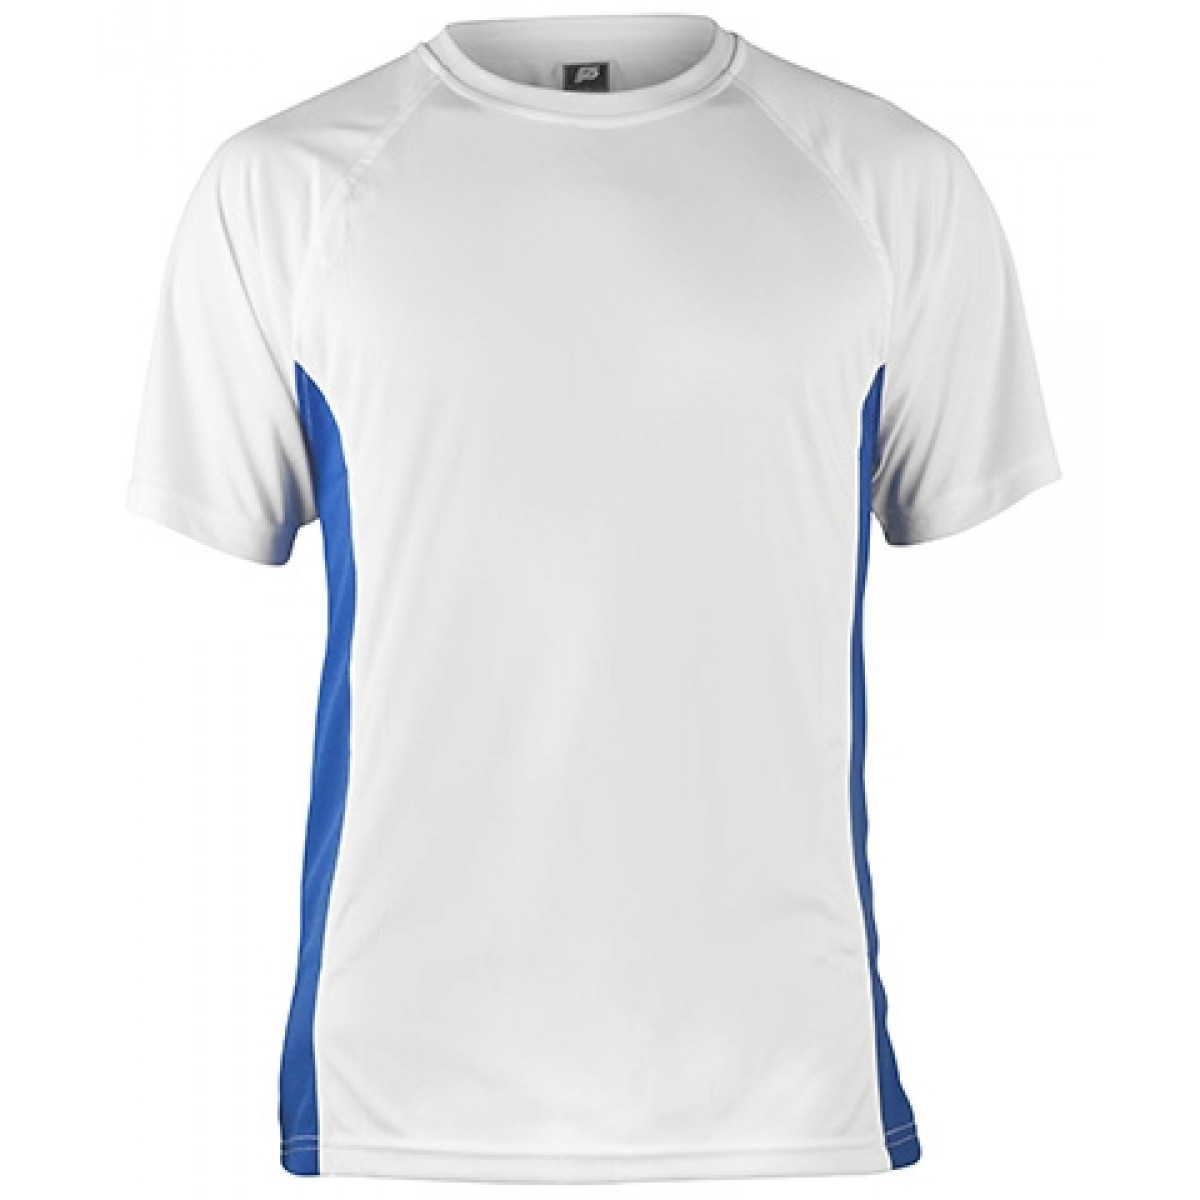 Short Sleeve White Performance With Blue Side Insert-White/Blue-2XL